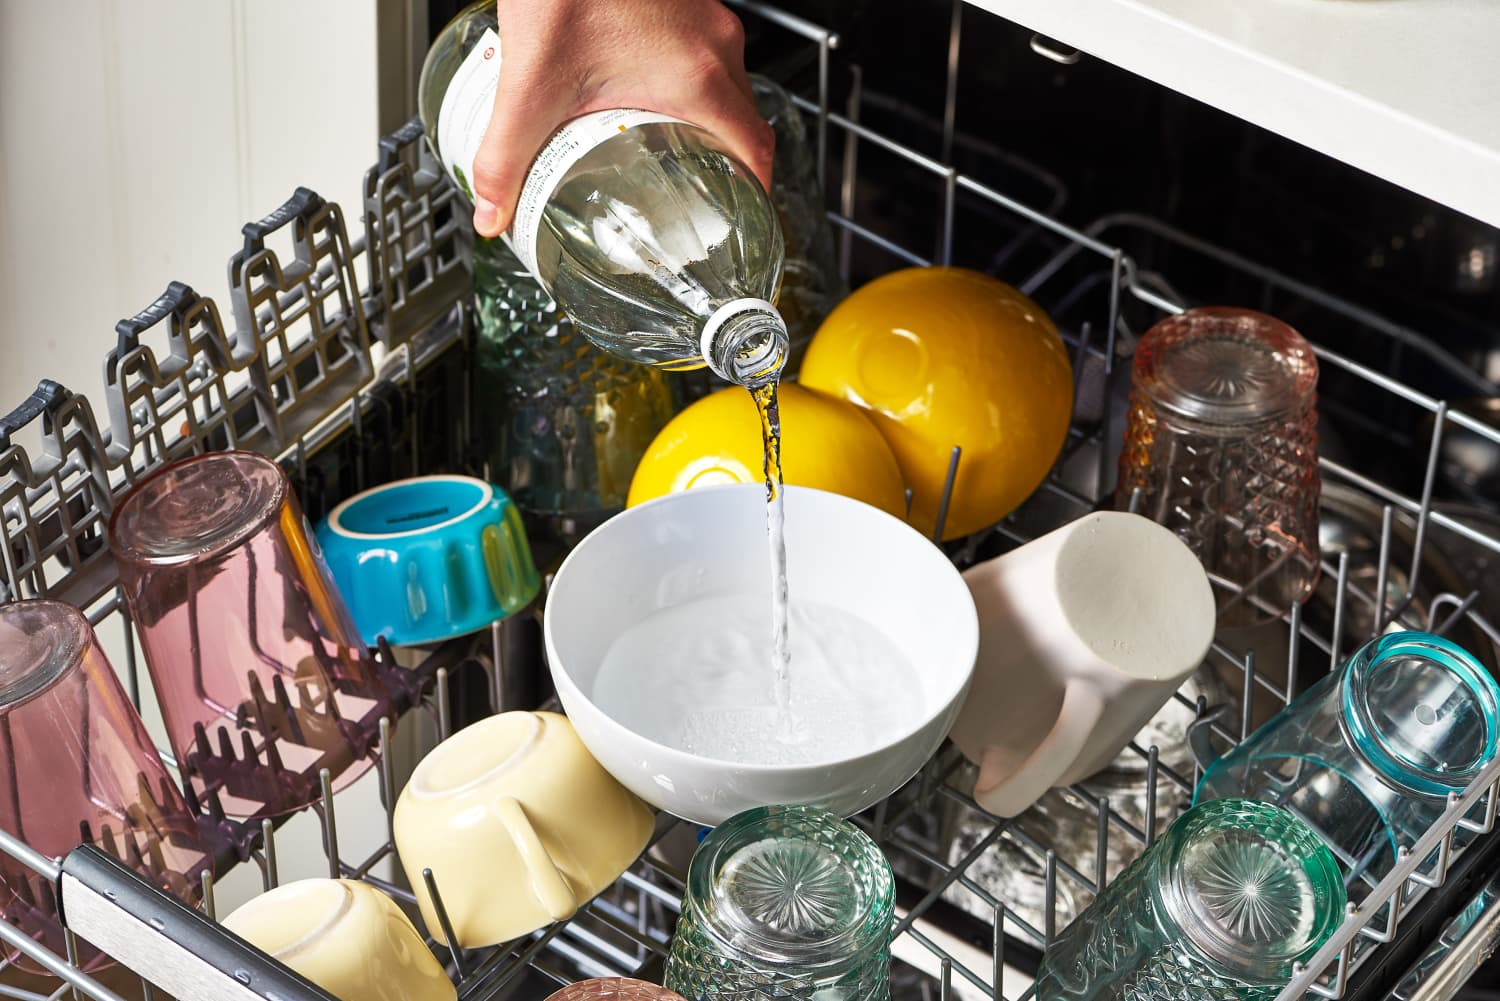 You Should Put a Bowl of Vinegar in Your Dishwasher—Here's Why